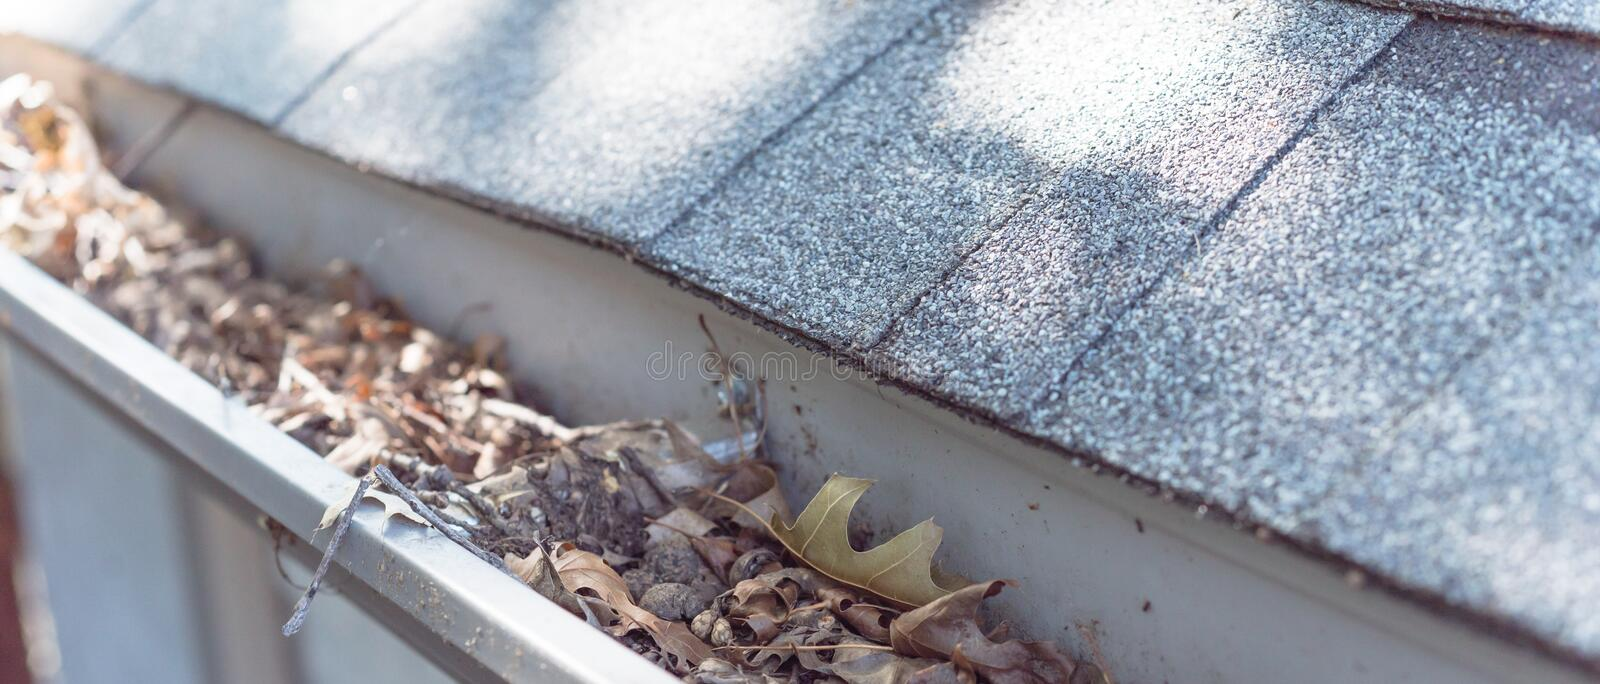 Panoramic gutter clogged by dried leaves and messy dirt need clean-up. Panorama view gutter near roof shingles of residential house full of dried leaves and royalty free stock images